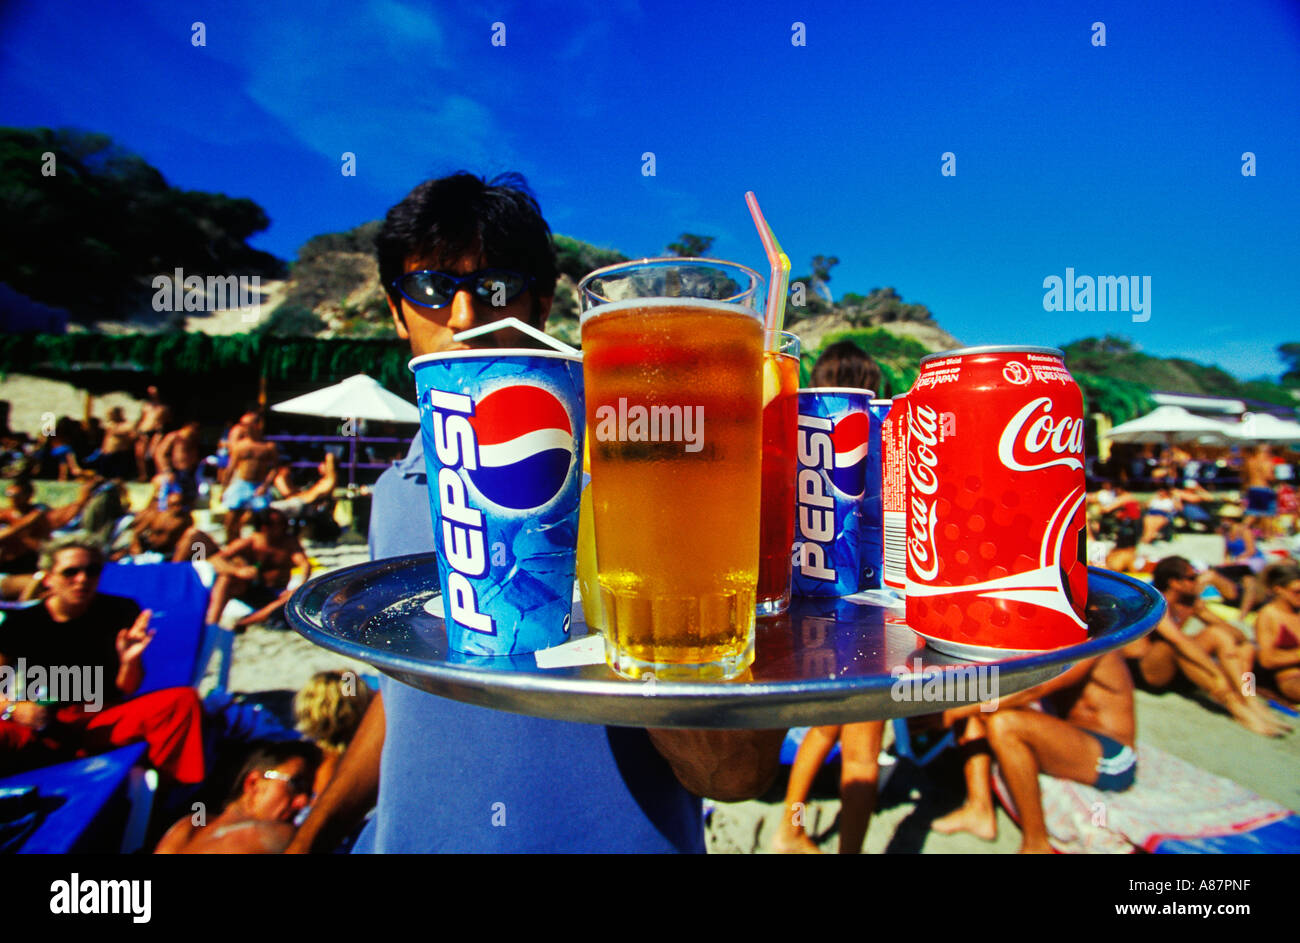 Ice cold drinks being served at Sa Trinchas beach Ibiza - Stock Image